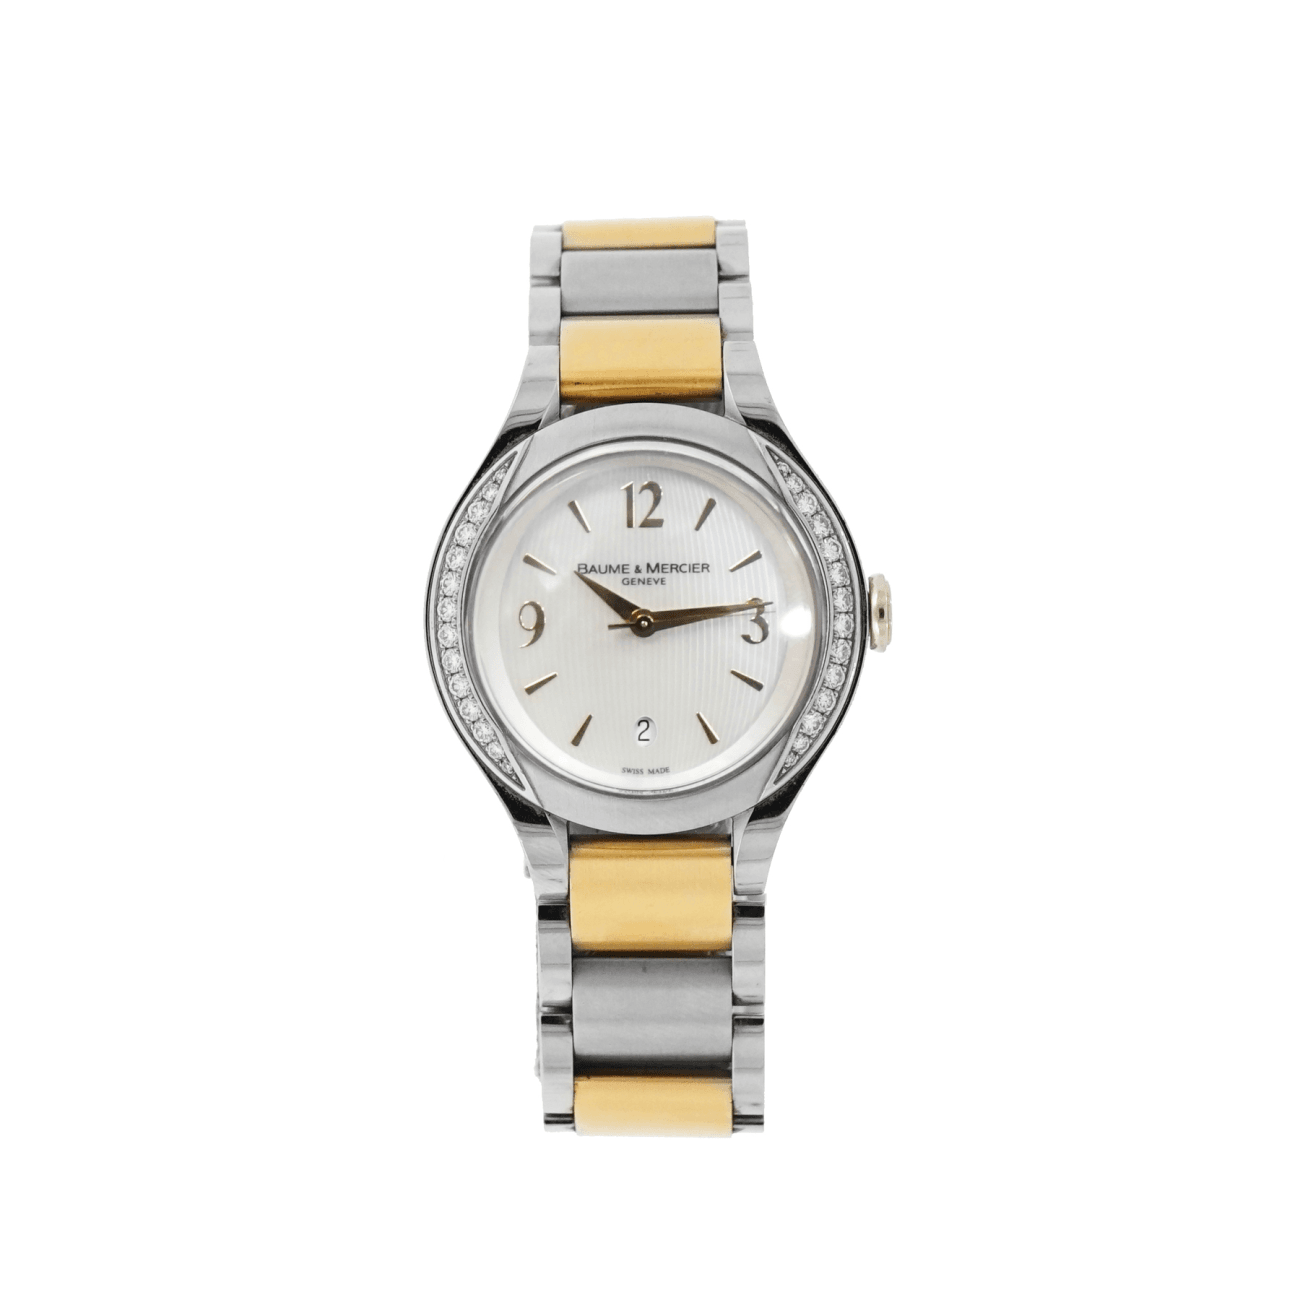 Pre-Owned Baume & Mercier Watches - Ilea collection | Manfredi Jewels